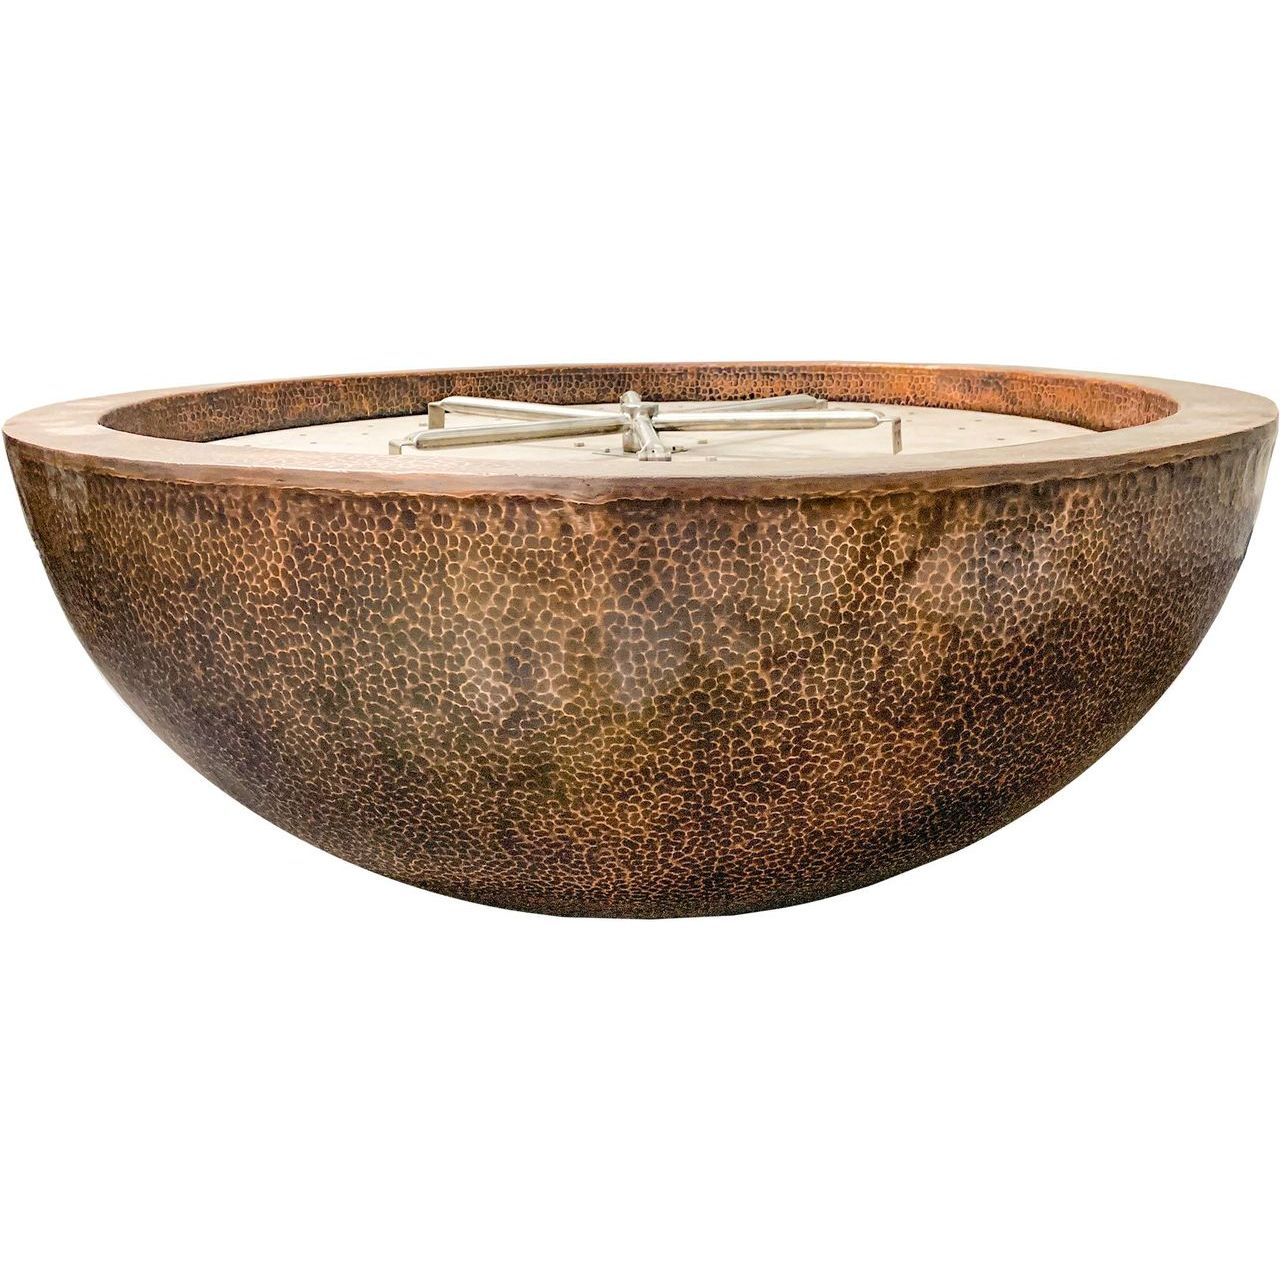 Prism Hardscapes Moderno 4 Fire Bowl in Copper - LP